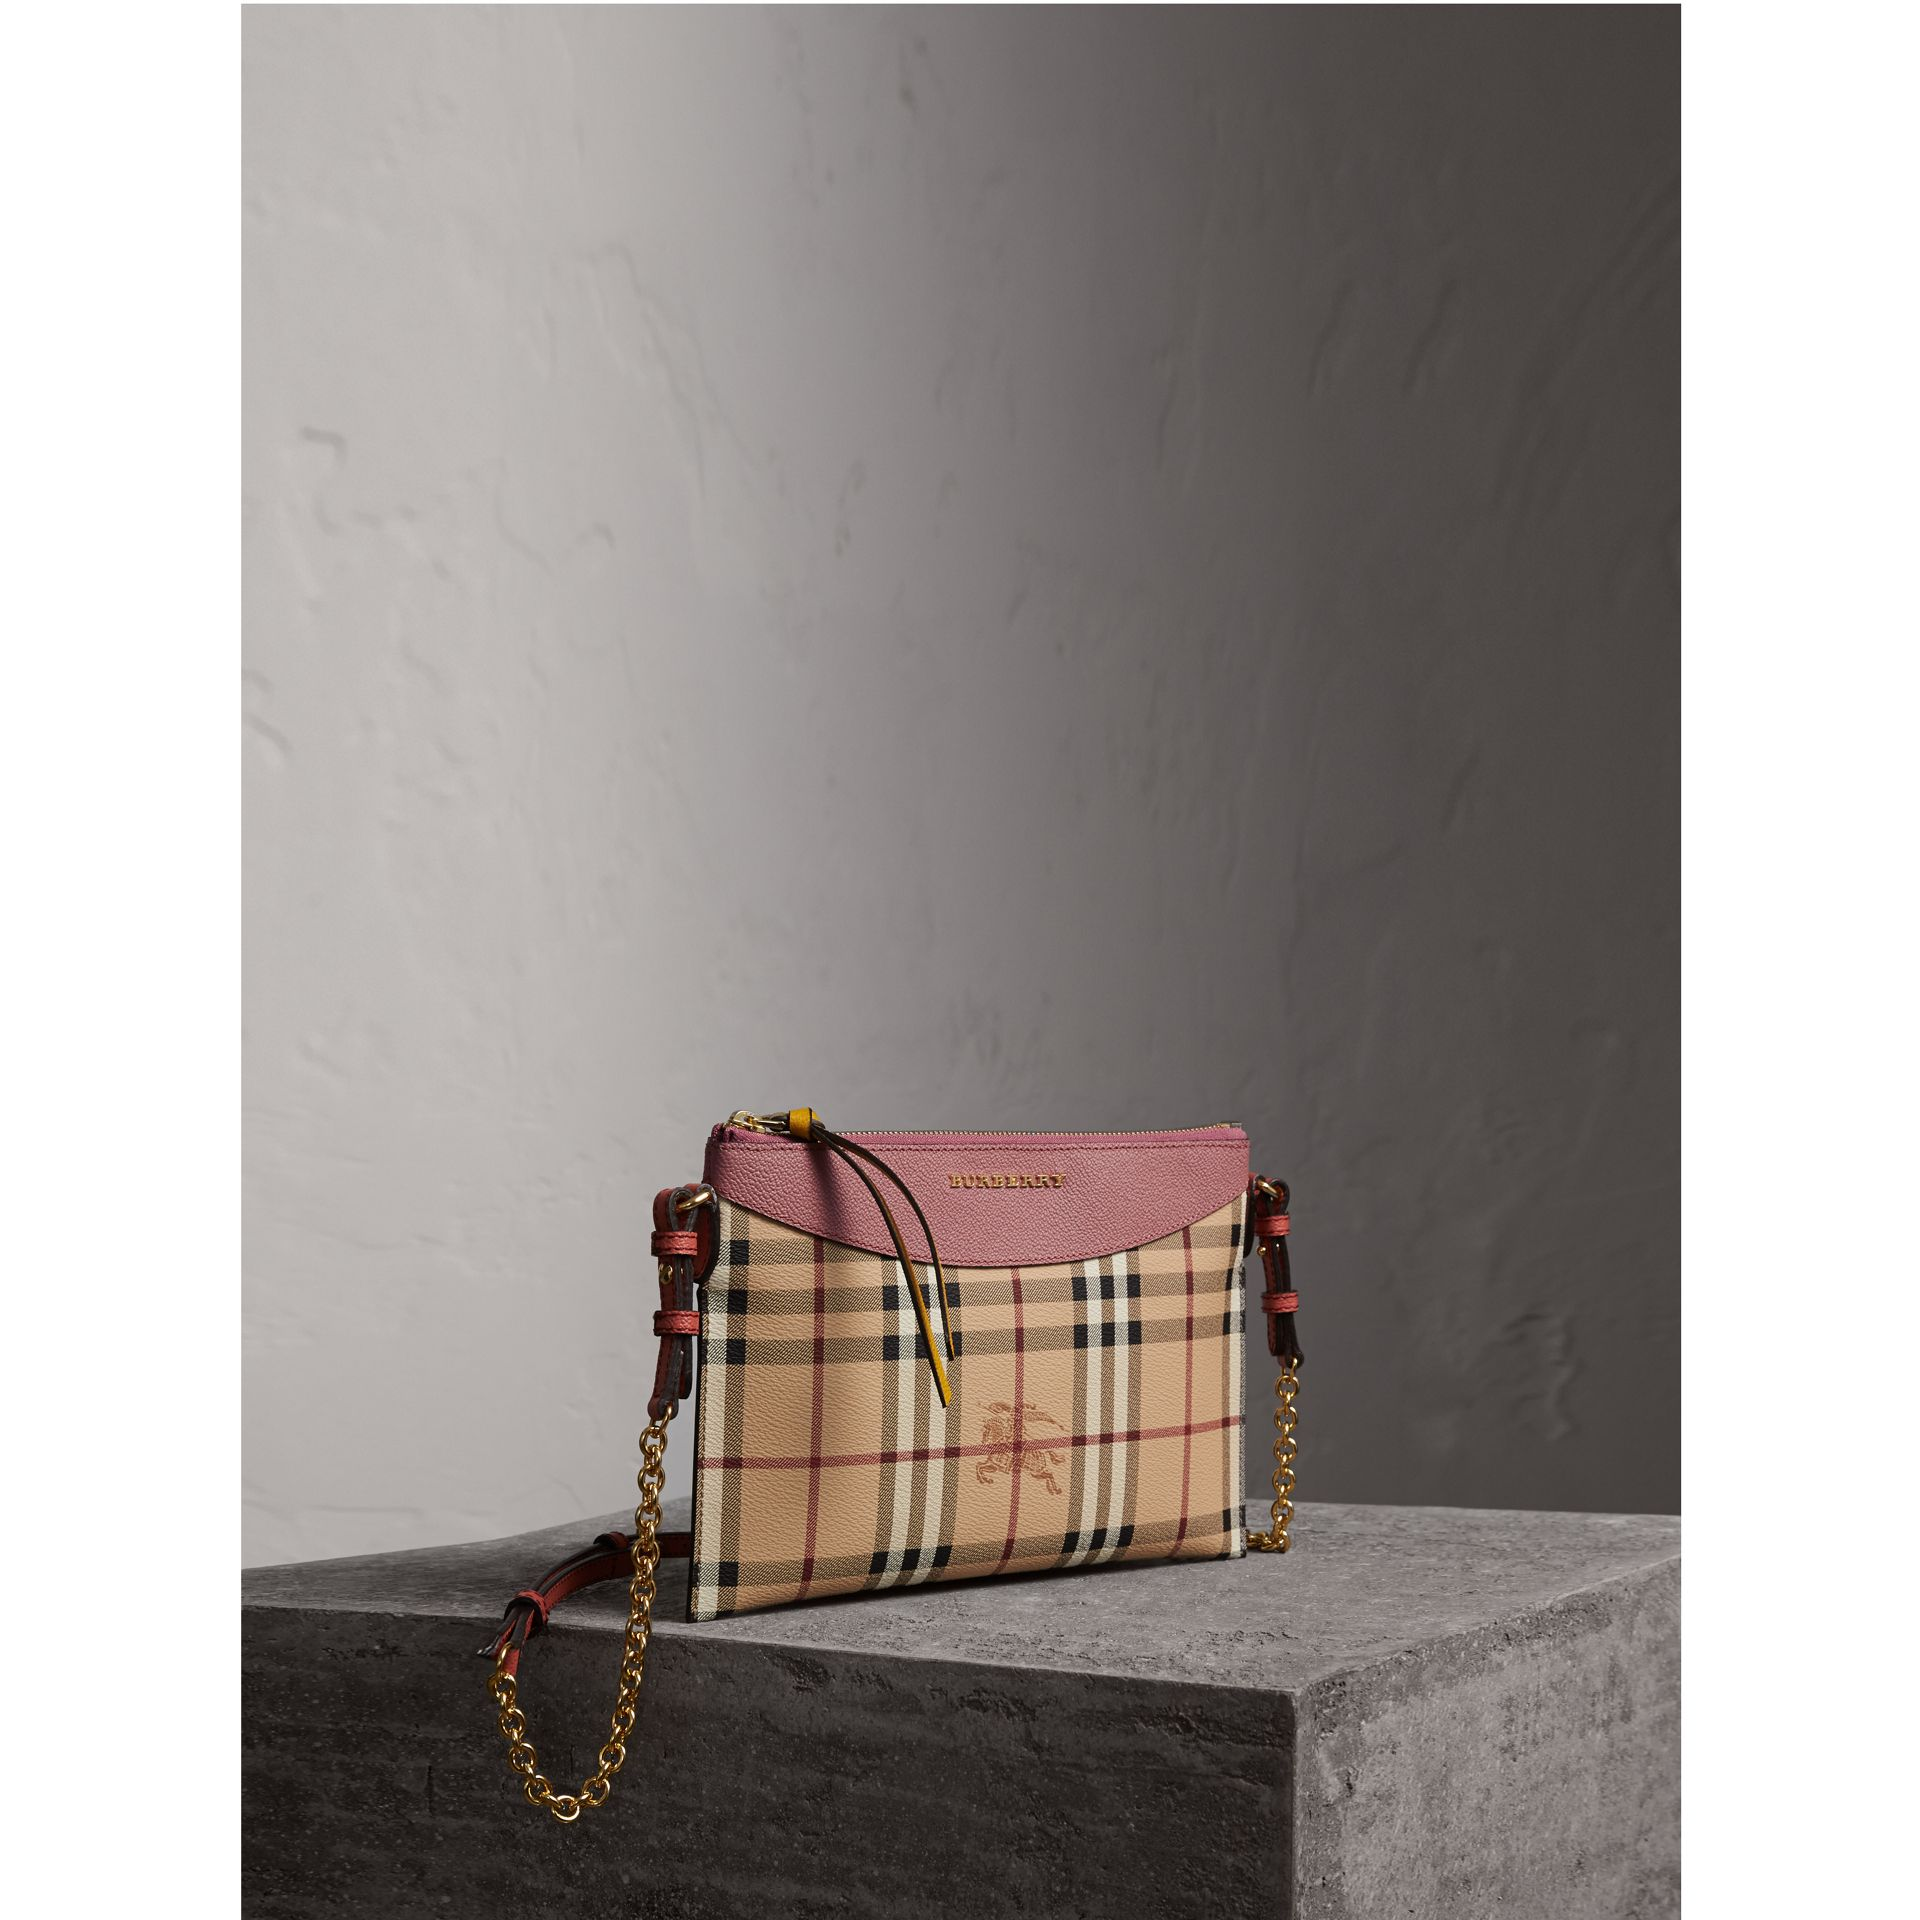 Haymarket Check and Two-tone Leather Clutch Bag in Dusty Pink/multicolour - Women | Burberry Hong Kong - gallery image 1